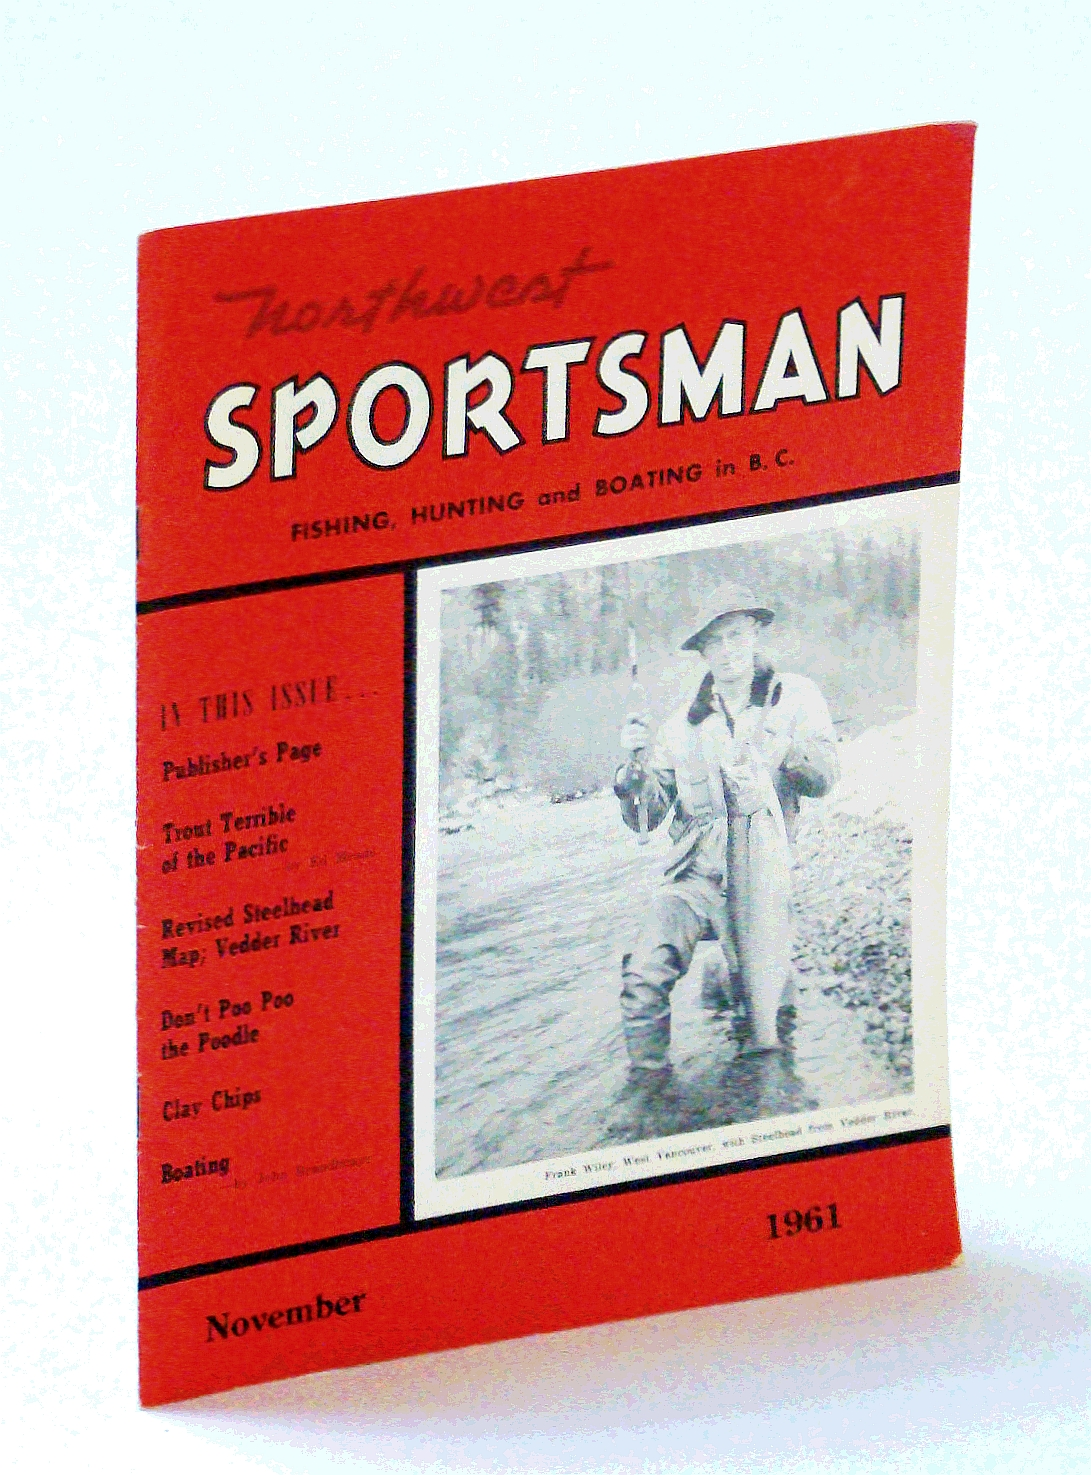 Image for Northwest Sportsman Magazine - Fishing, Hunting and Boating, November [Nov.] 1961 - Cover Photo of Frank Wiley of West Vancouver Holding a Vedder River Steelhead